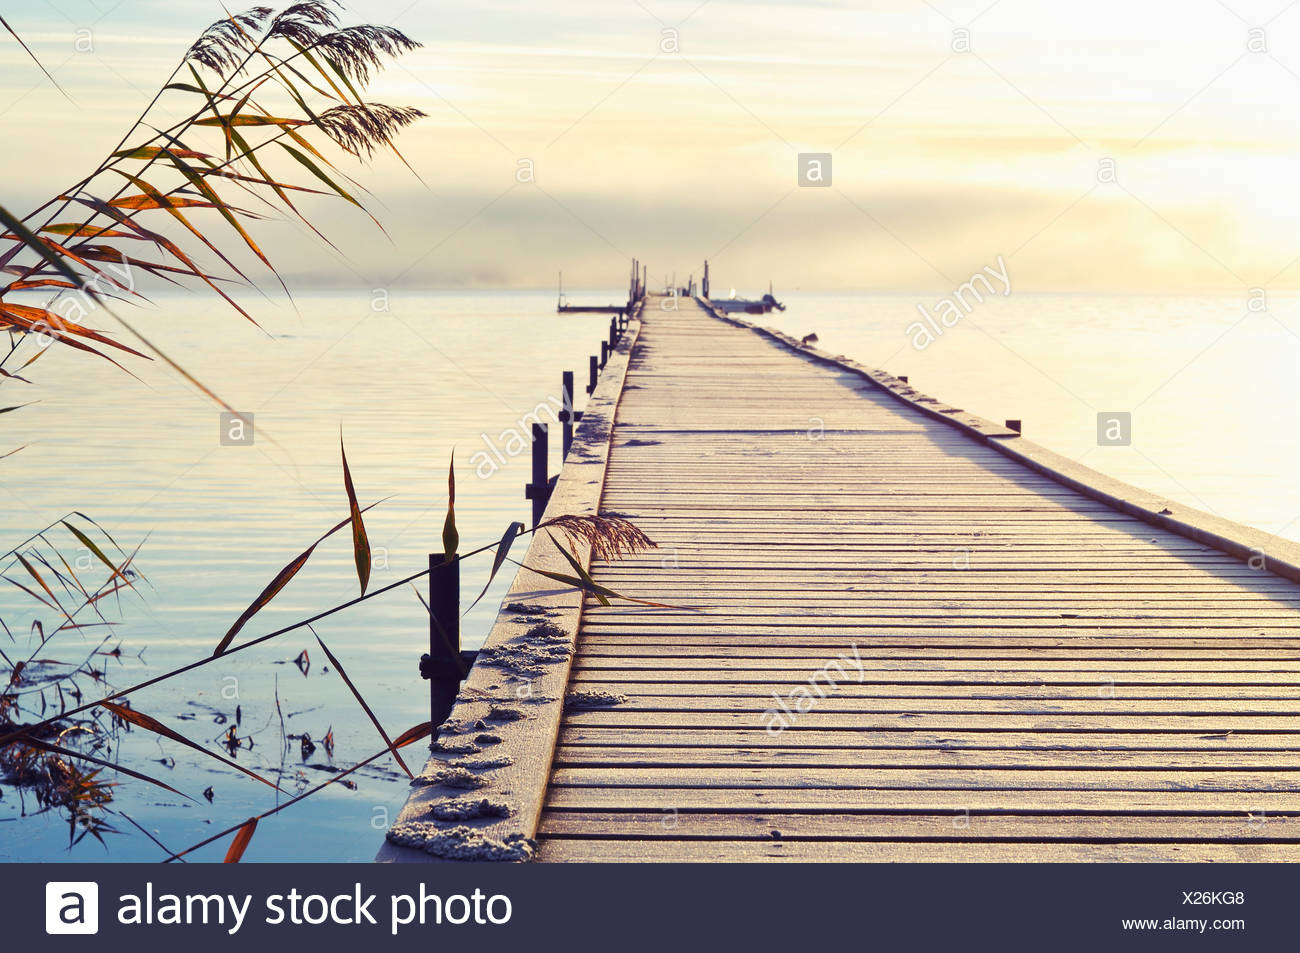 View over waterscape and jetty - Stock Image